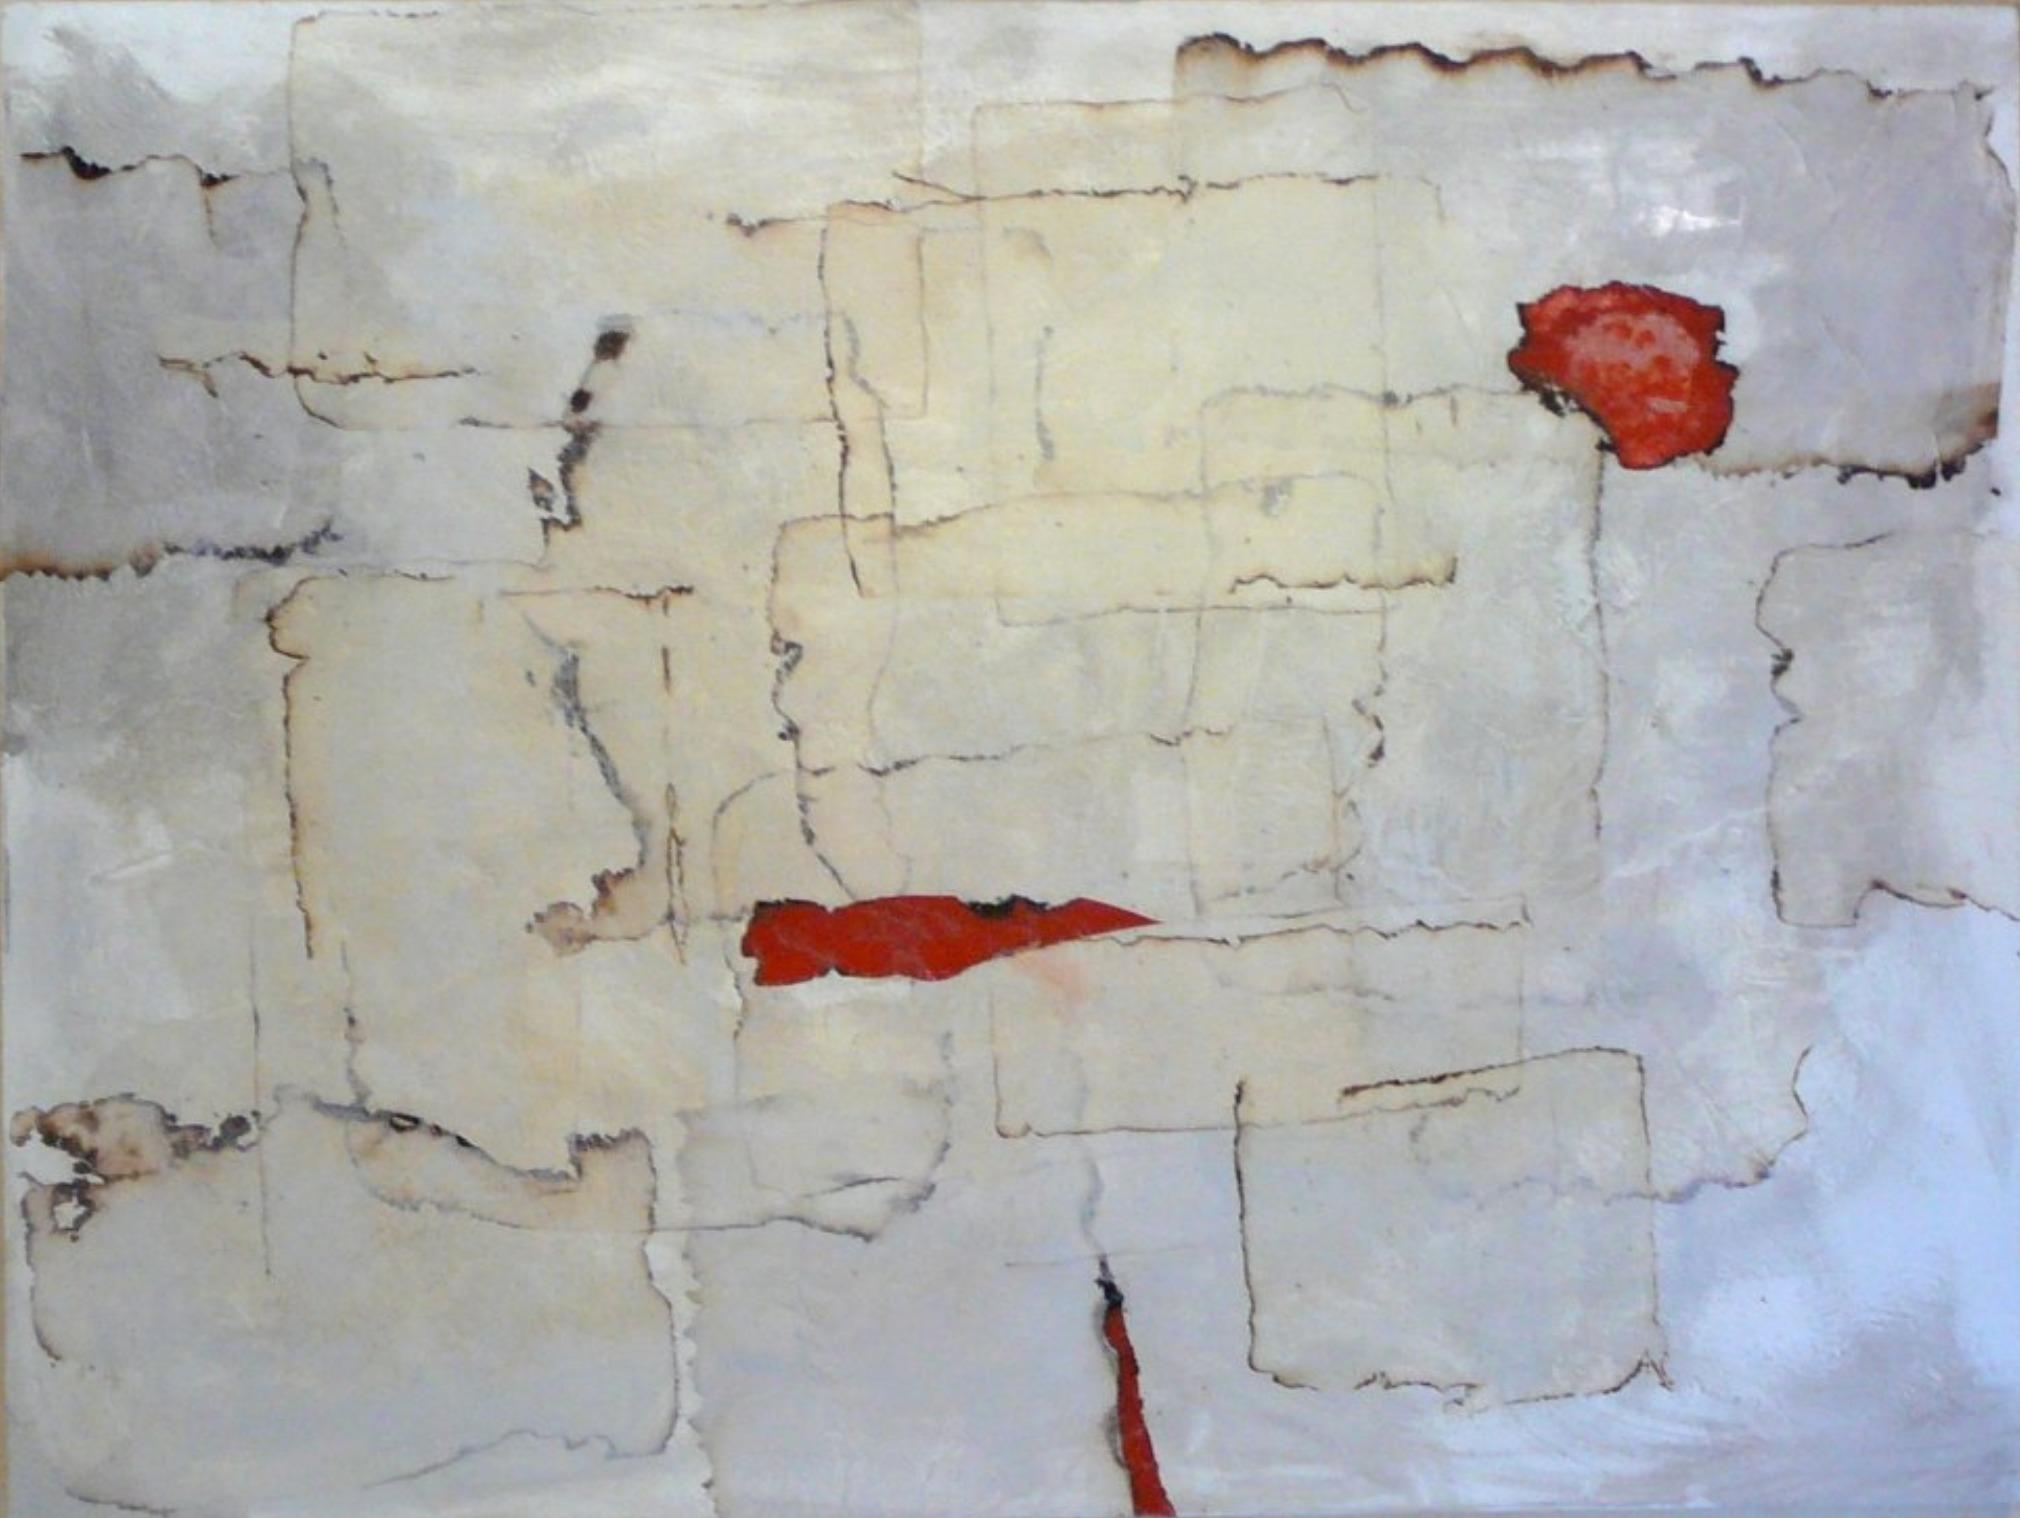 Clarity by Louis Shields, Abstract Mixed Media on Canvas, 2010